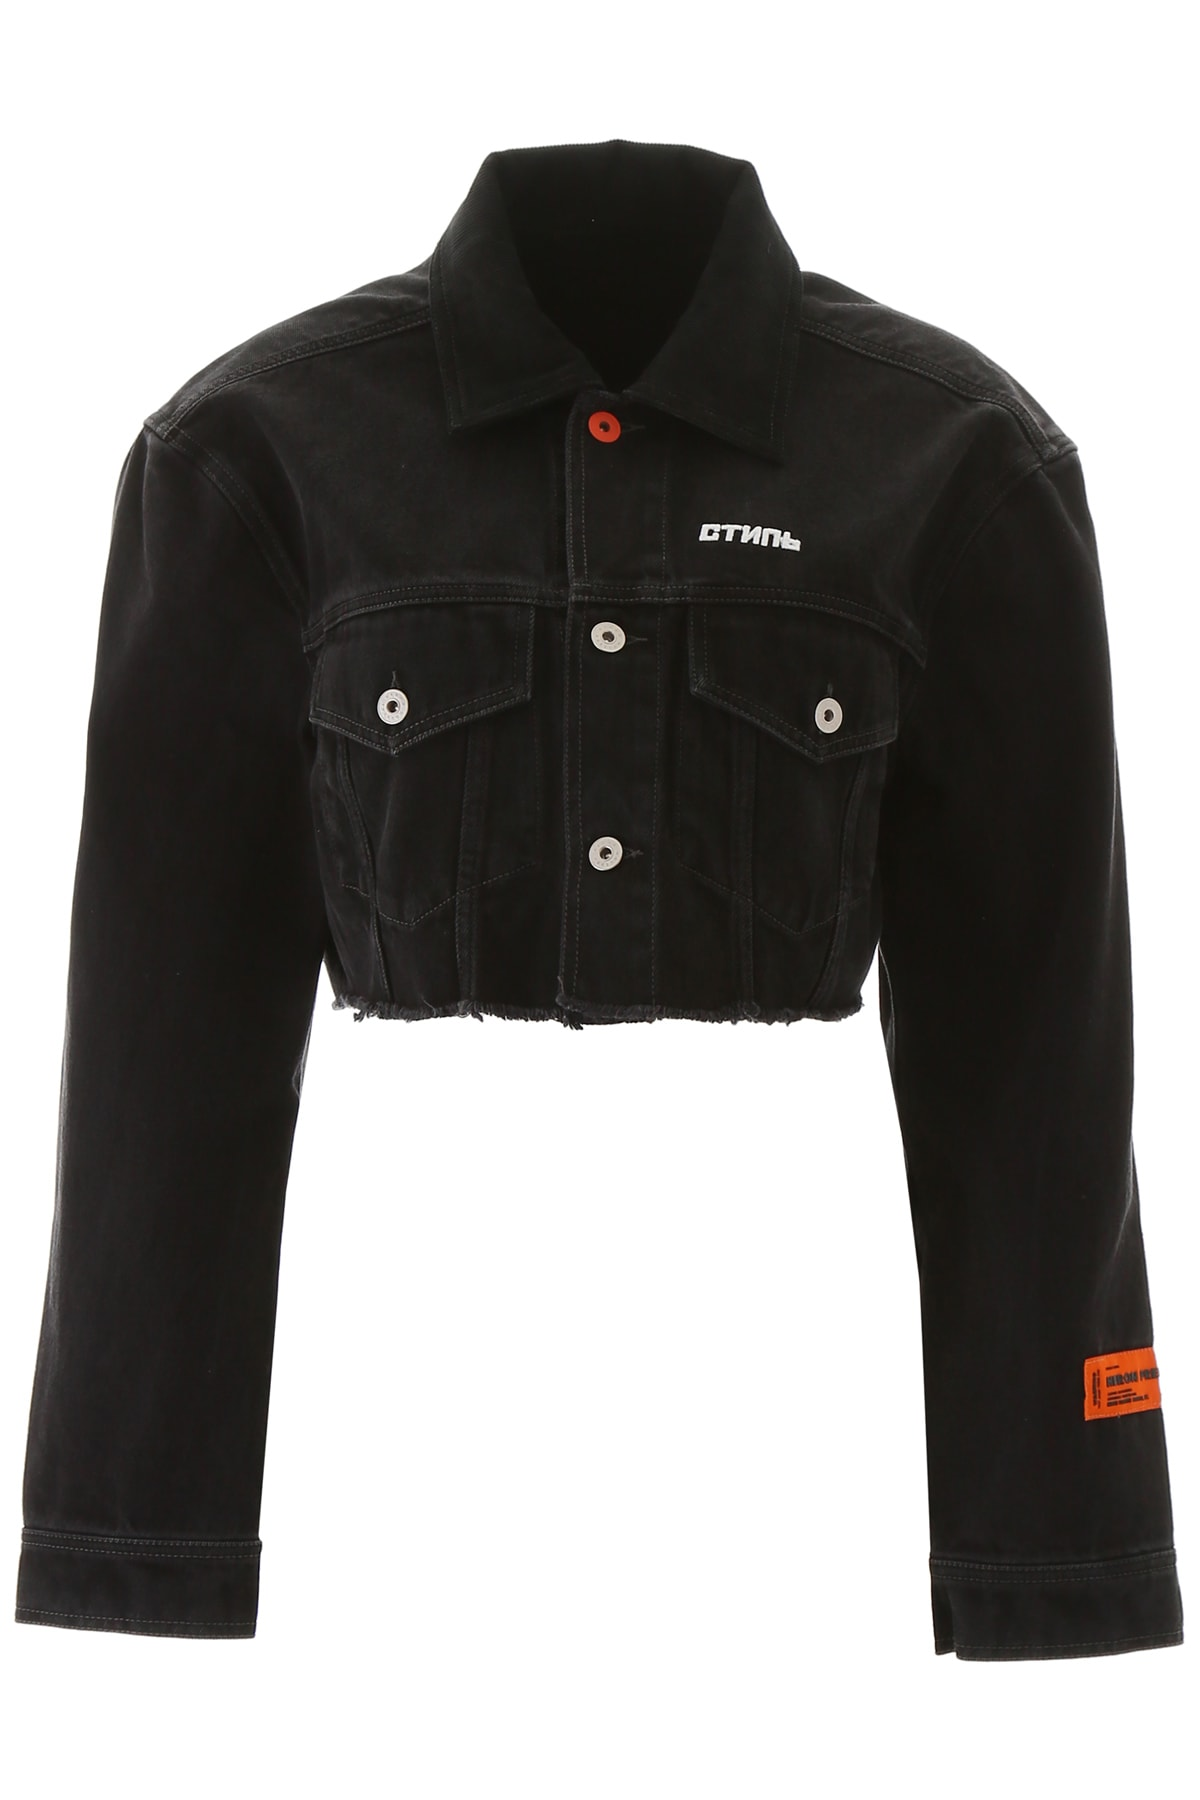 HERON PRESTON Prohibited Denim Jacket